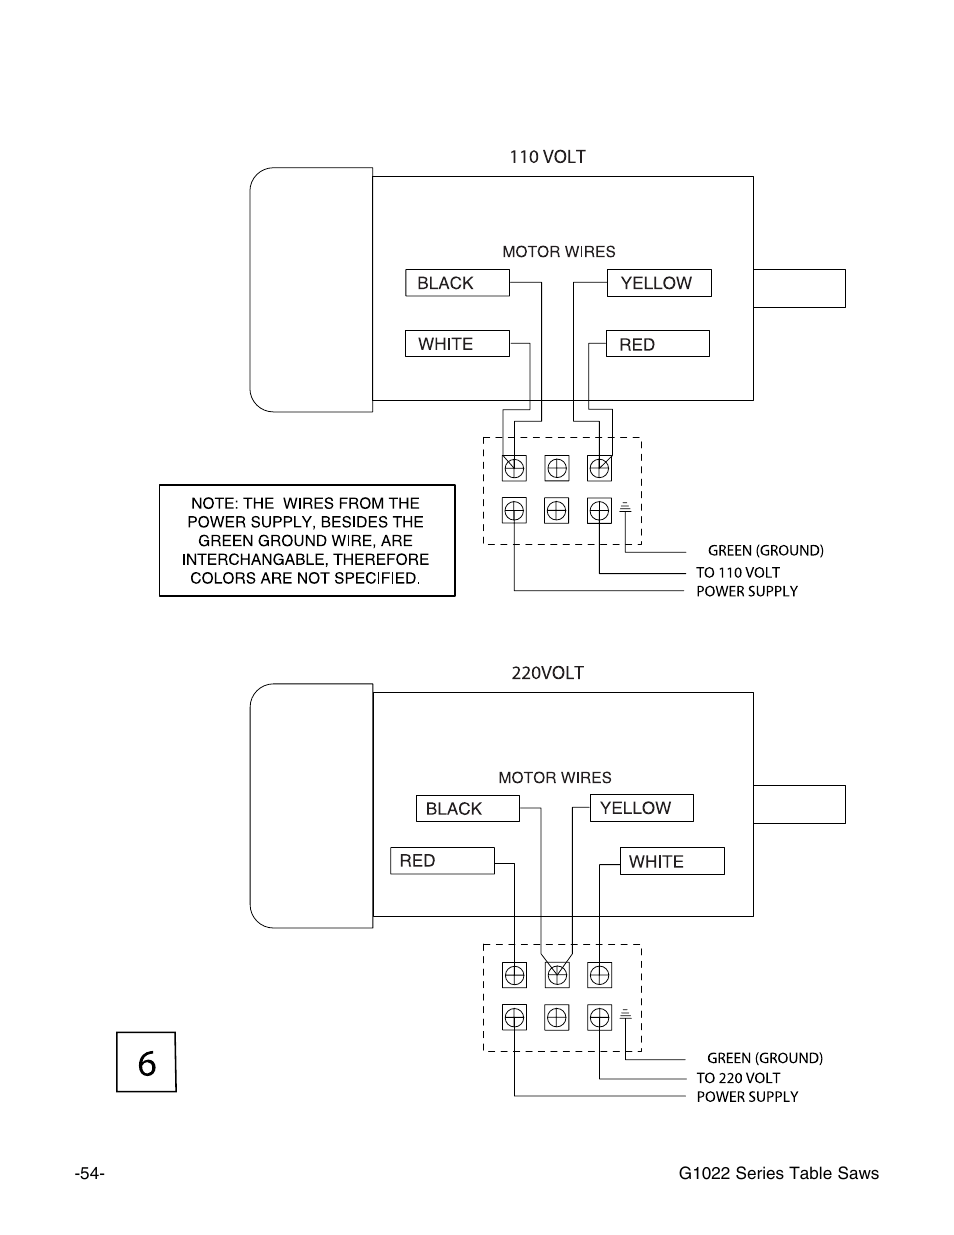 medium resolution of sm and z wiring diagram grizzly g1022prozx user manual page 56 84